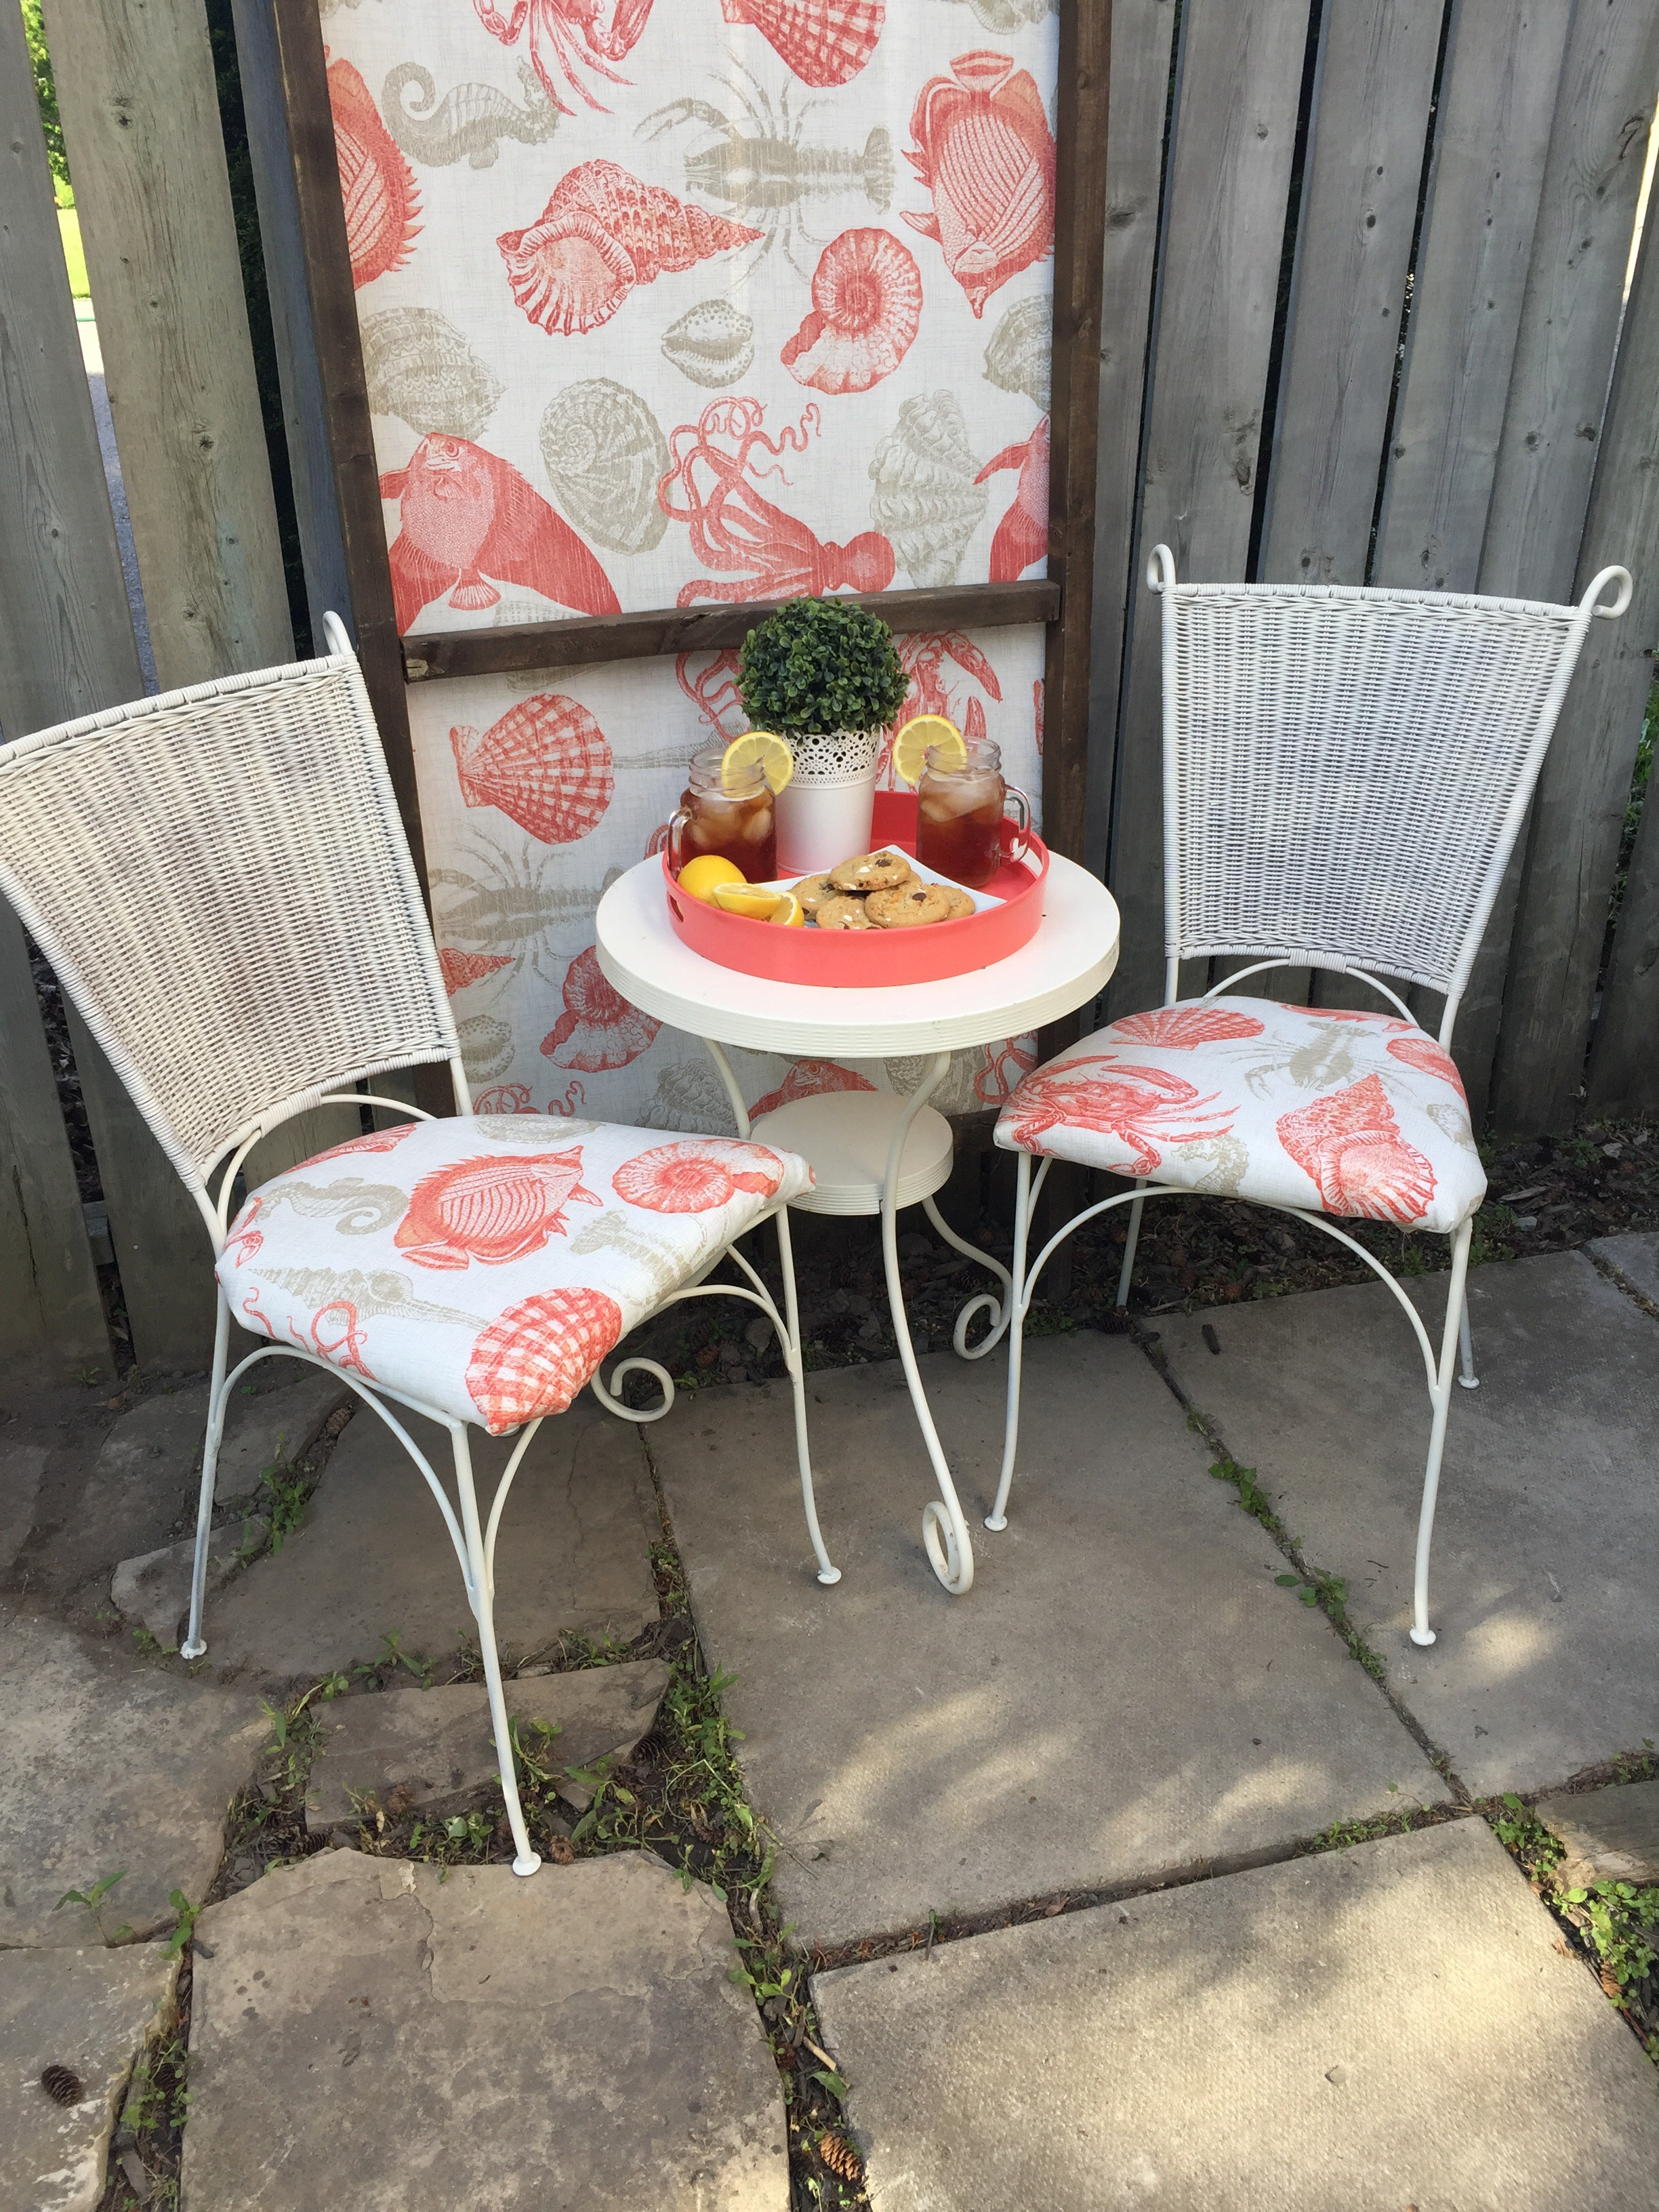 Bistro Set Upcycle. I transformed these two chairs that were sitting on the curb into a garden bistro set on apurdylittlehouse.com